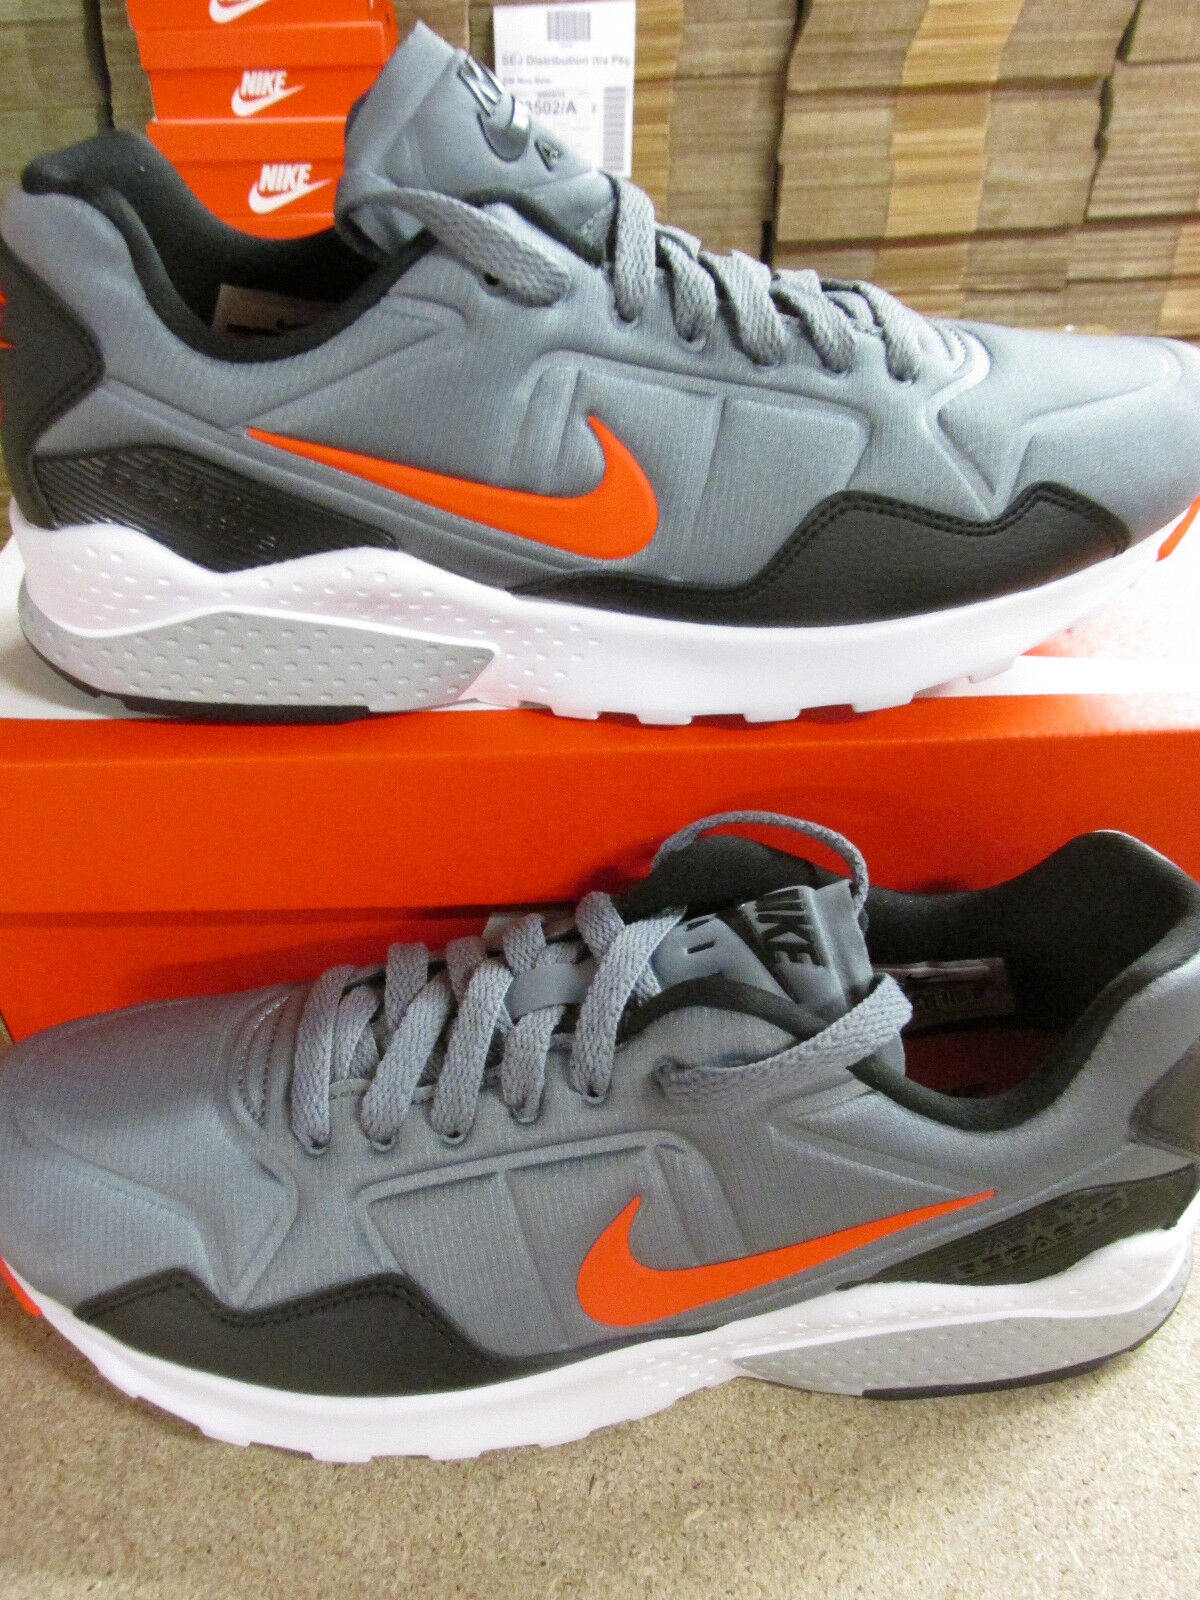 Nike Air Zoom Pegasus 92 Mens Running Trainers 844652 006 Sneakers Shoes